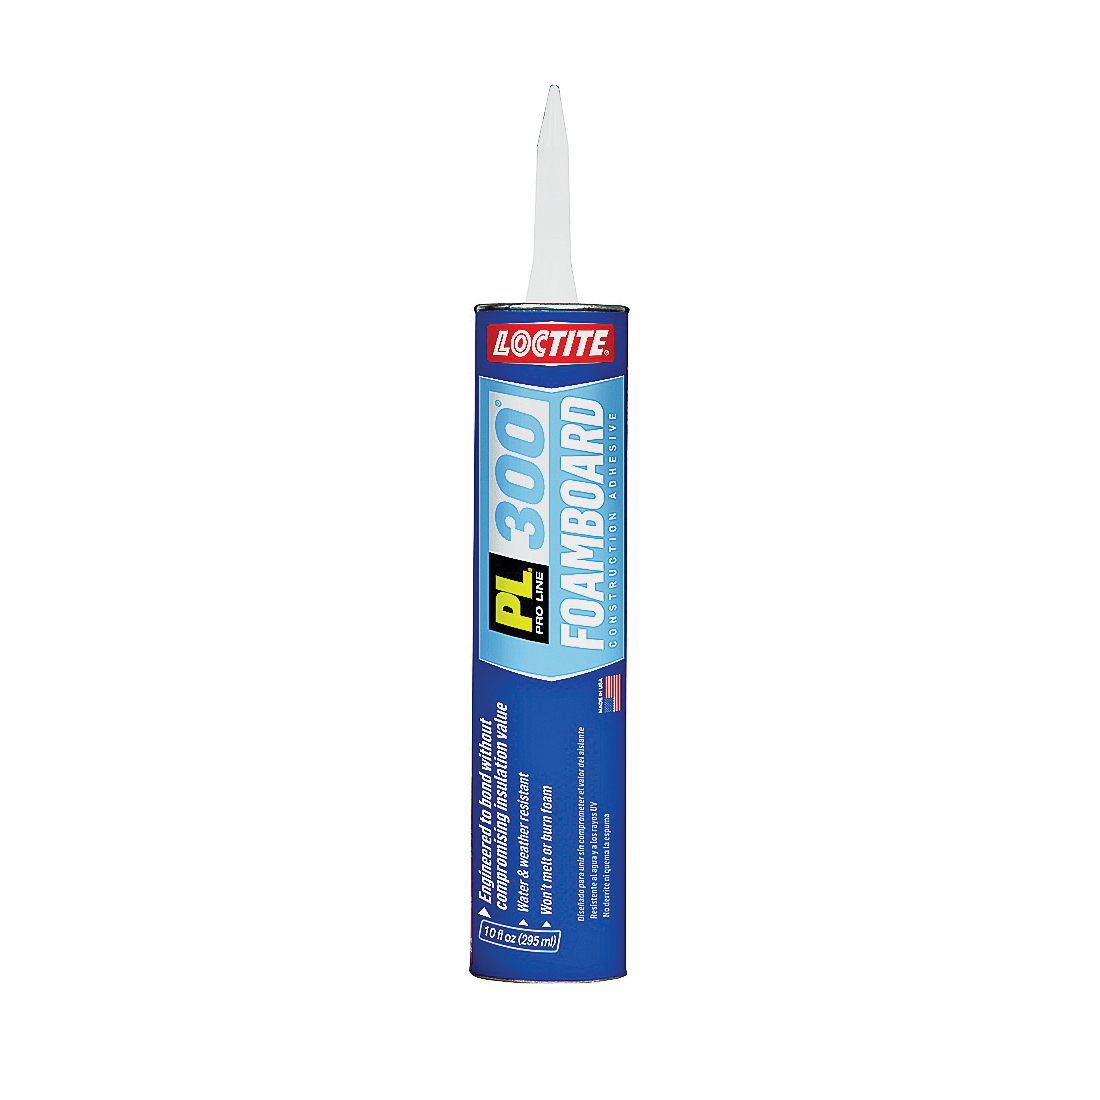 Picture of Loctite 1421941 Foamboard Adhesive, Blue, 10 oz Package, Cartridge